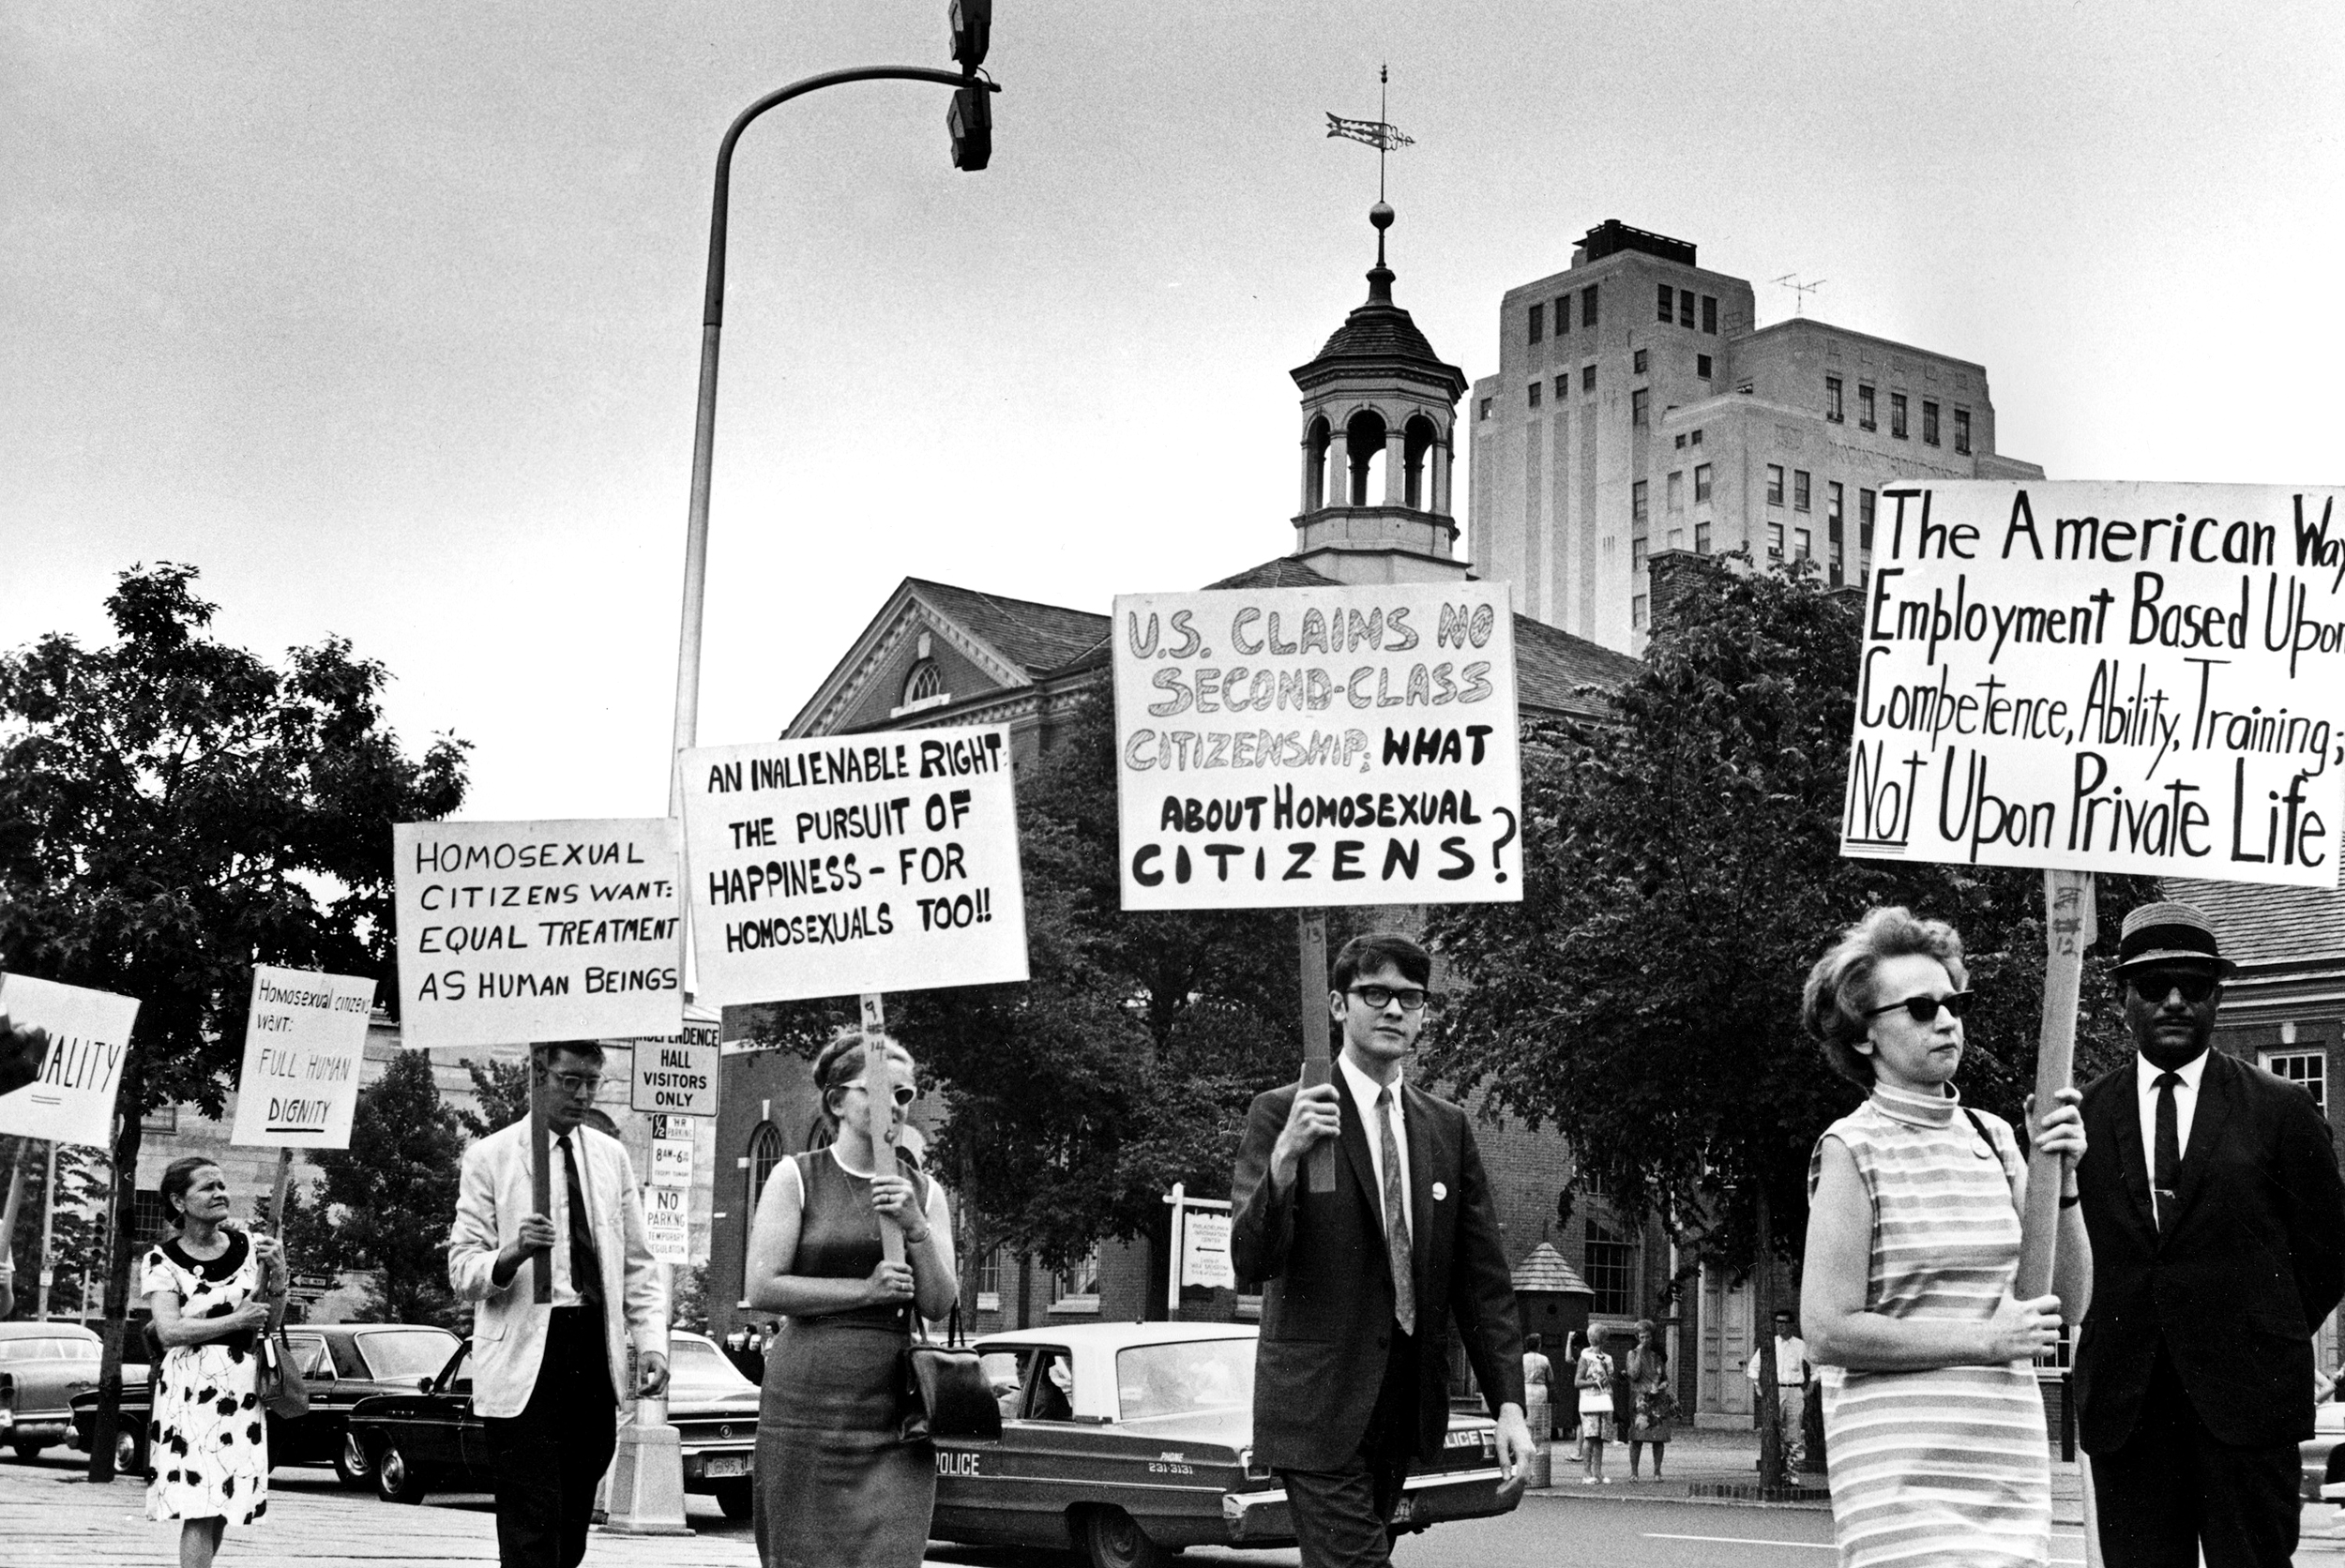 50 years after Stonewall, LGBTQ rights are still a work in progress